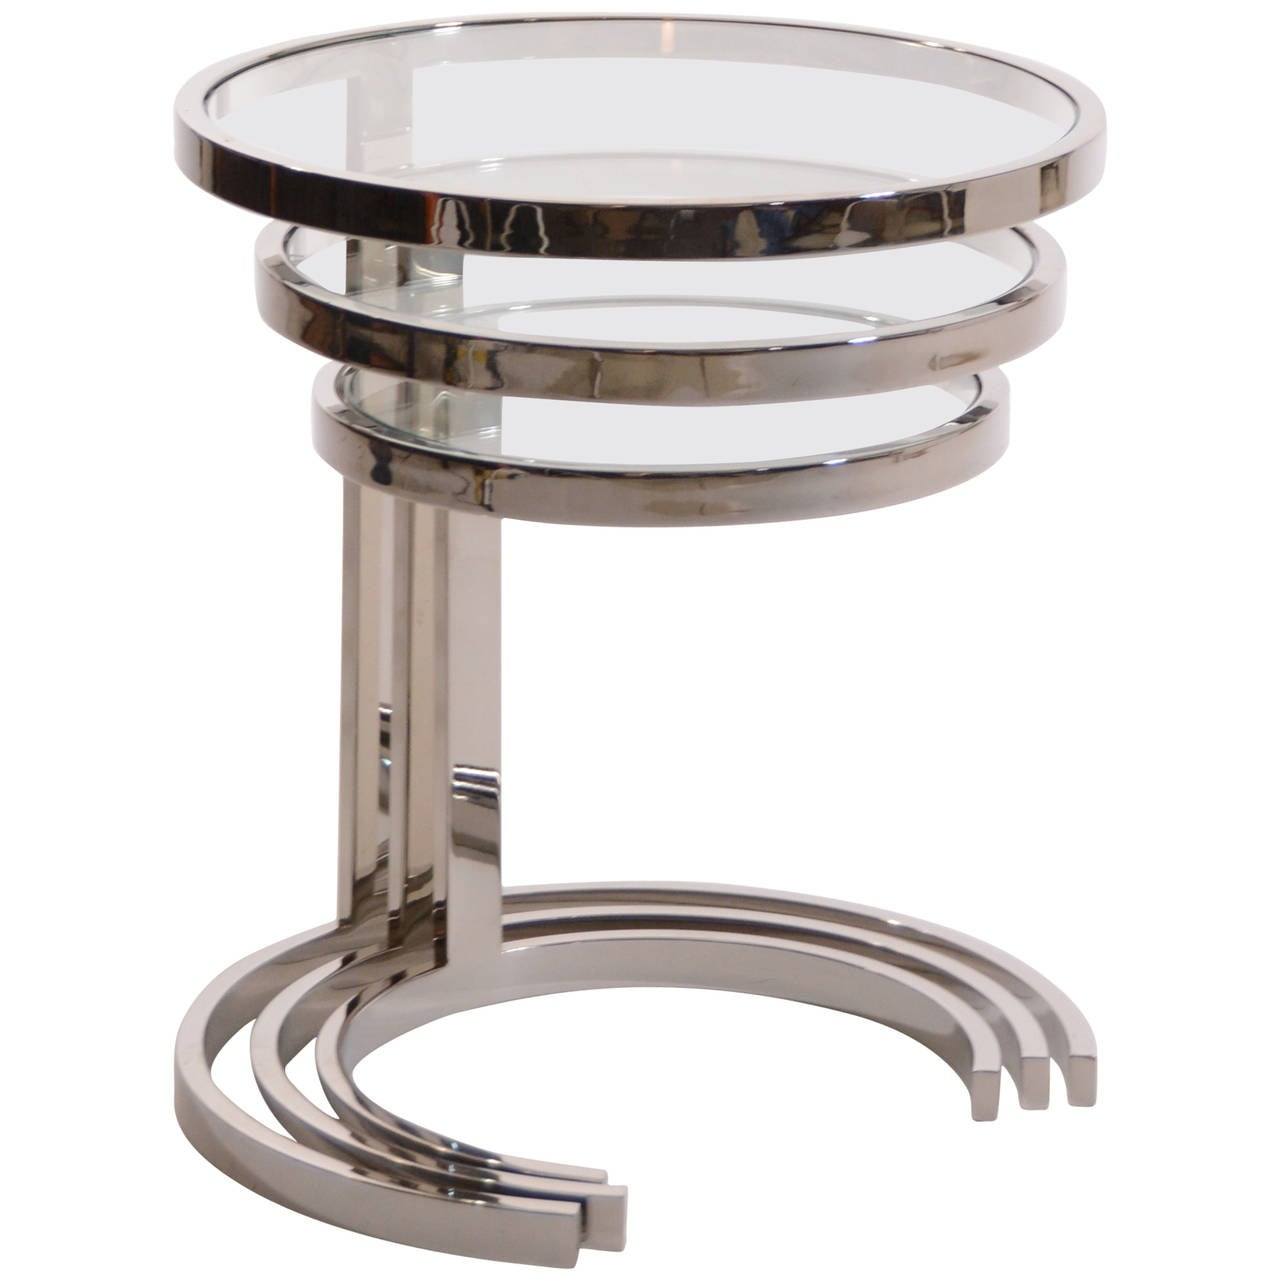 Glass Nesting Tables ~ Set of nesting stainless steel and glass tables